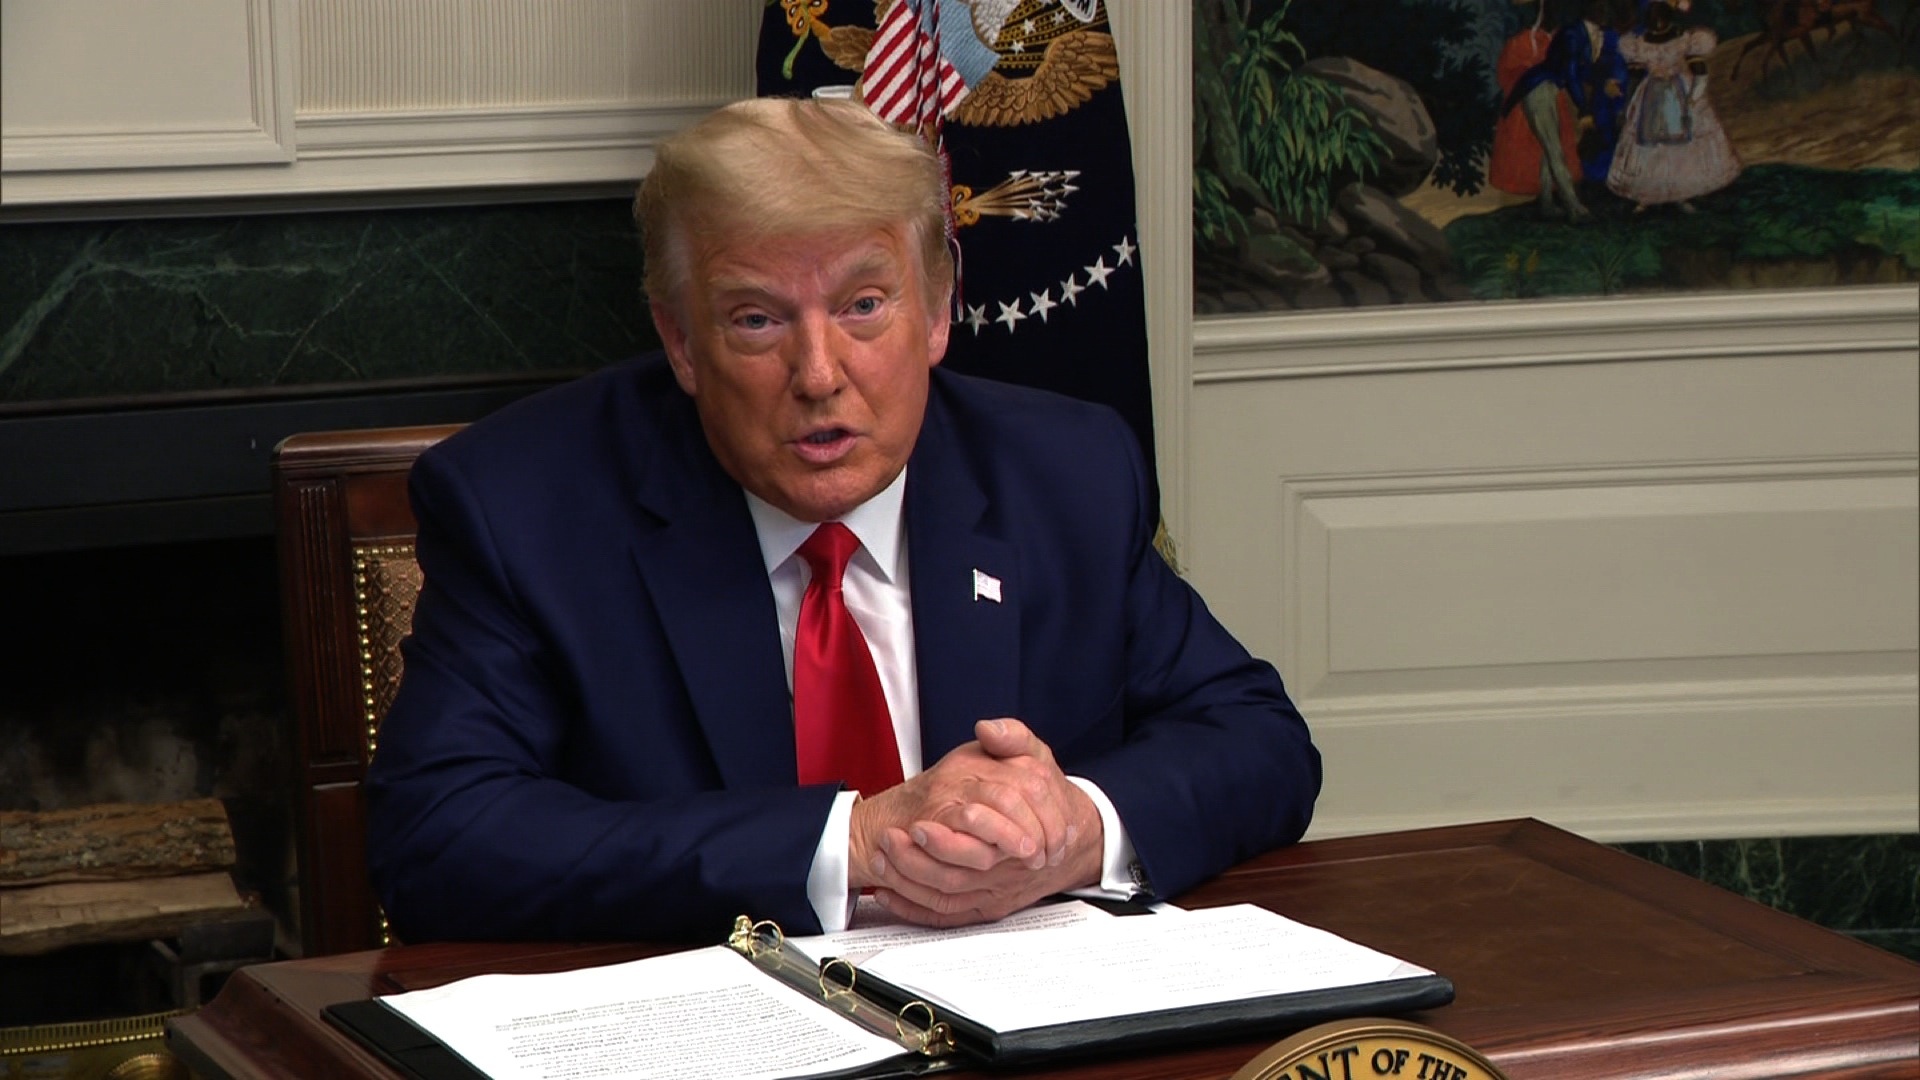 Trump says for first time he'll leave office if Electoral College votes for Biden